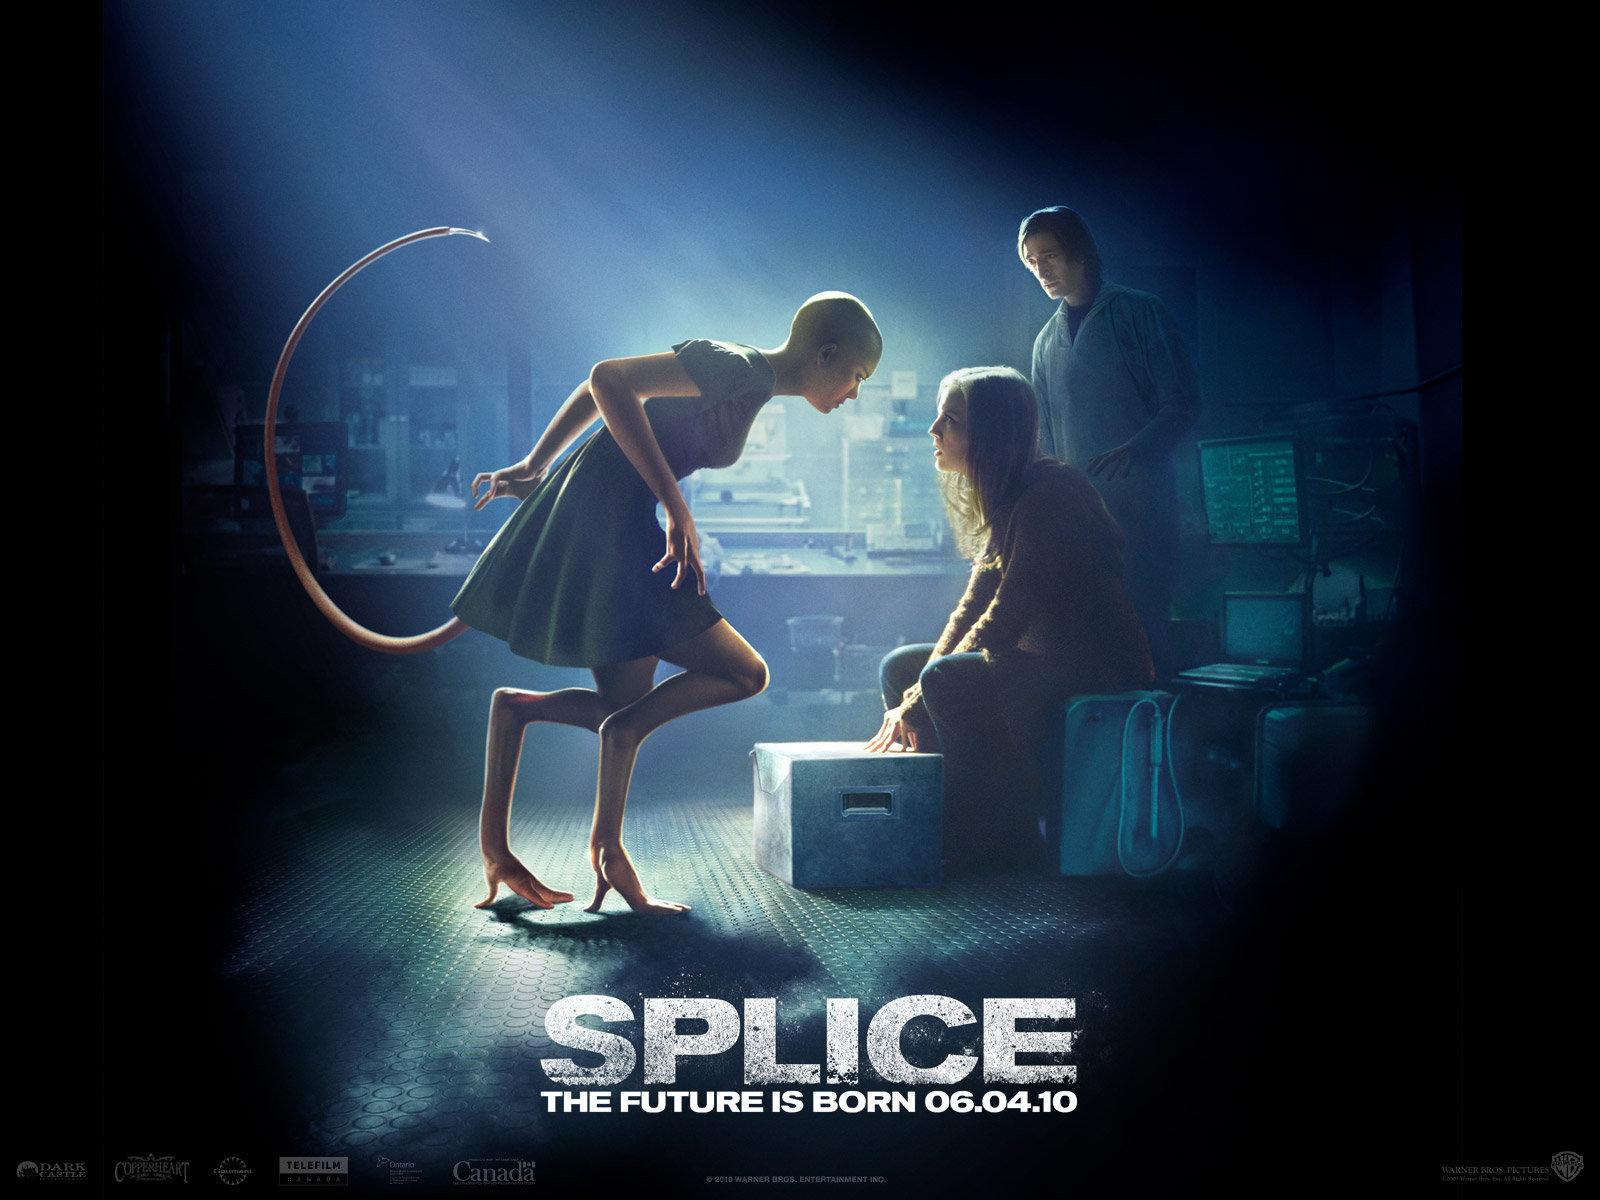 Splice Wallpaper - #10022100 (1280x1024) | Desktop Download page ...